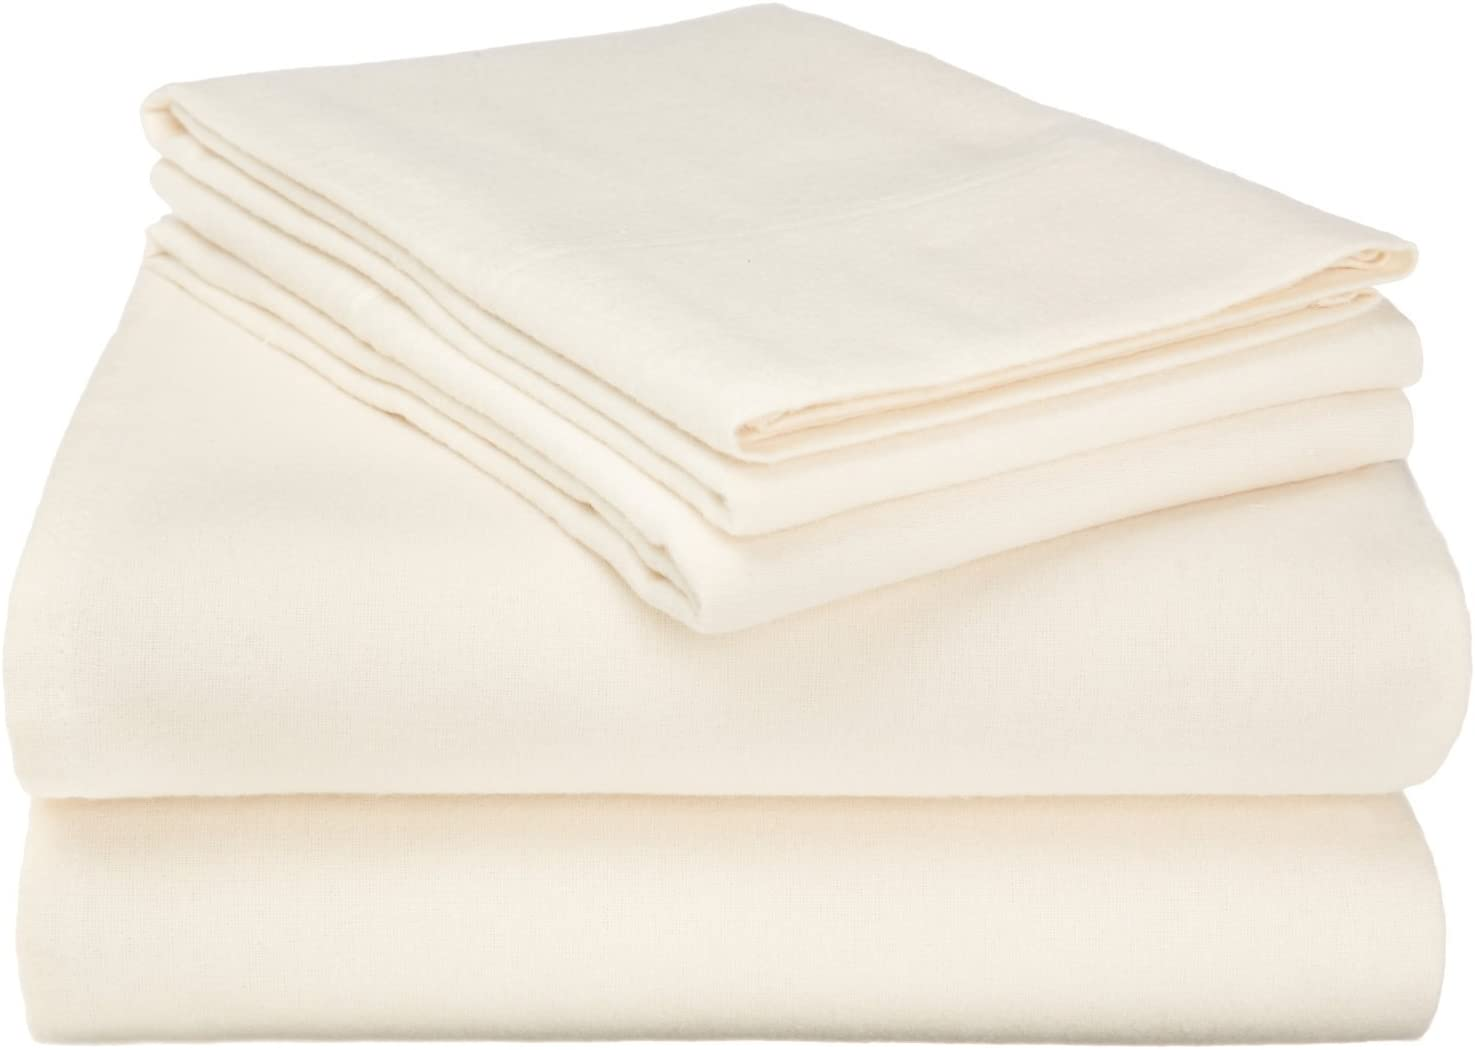 Superior Premium Cotton Flannel Sheets, All Season 100% Brushed Cotton Flannel Bedding, 4-Piece Sheet Set with Deep Fitting Pockets - Ivory Solid, King Bed